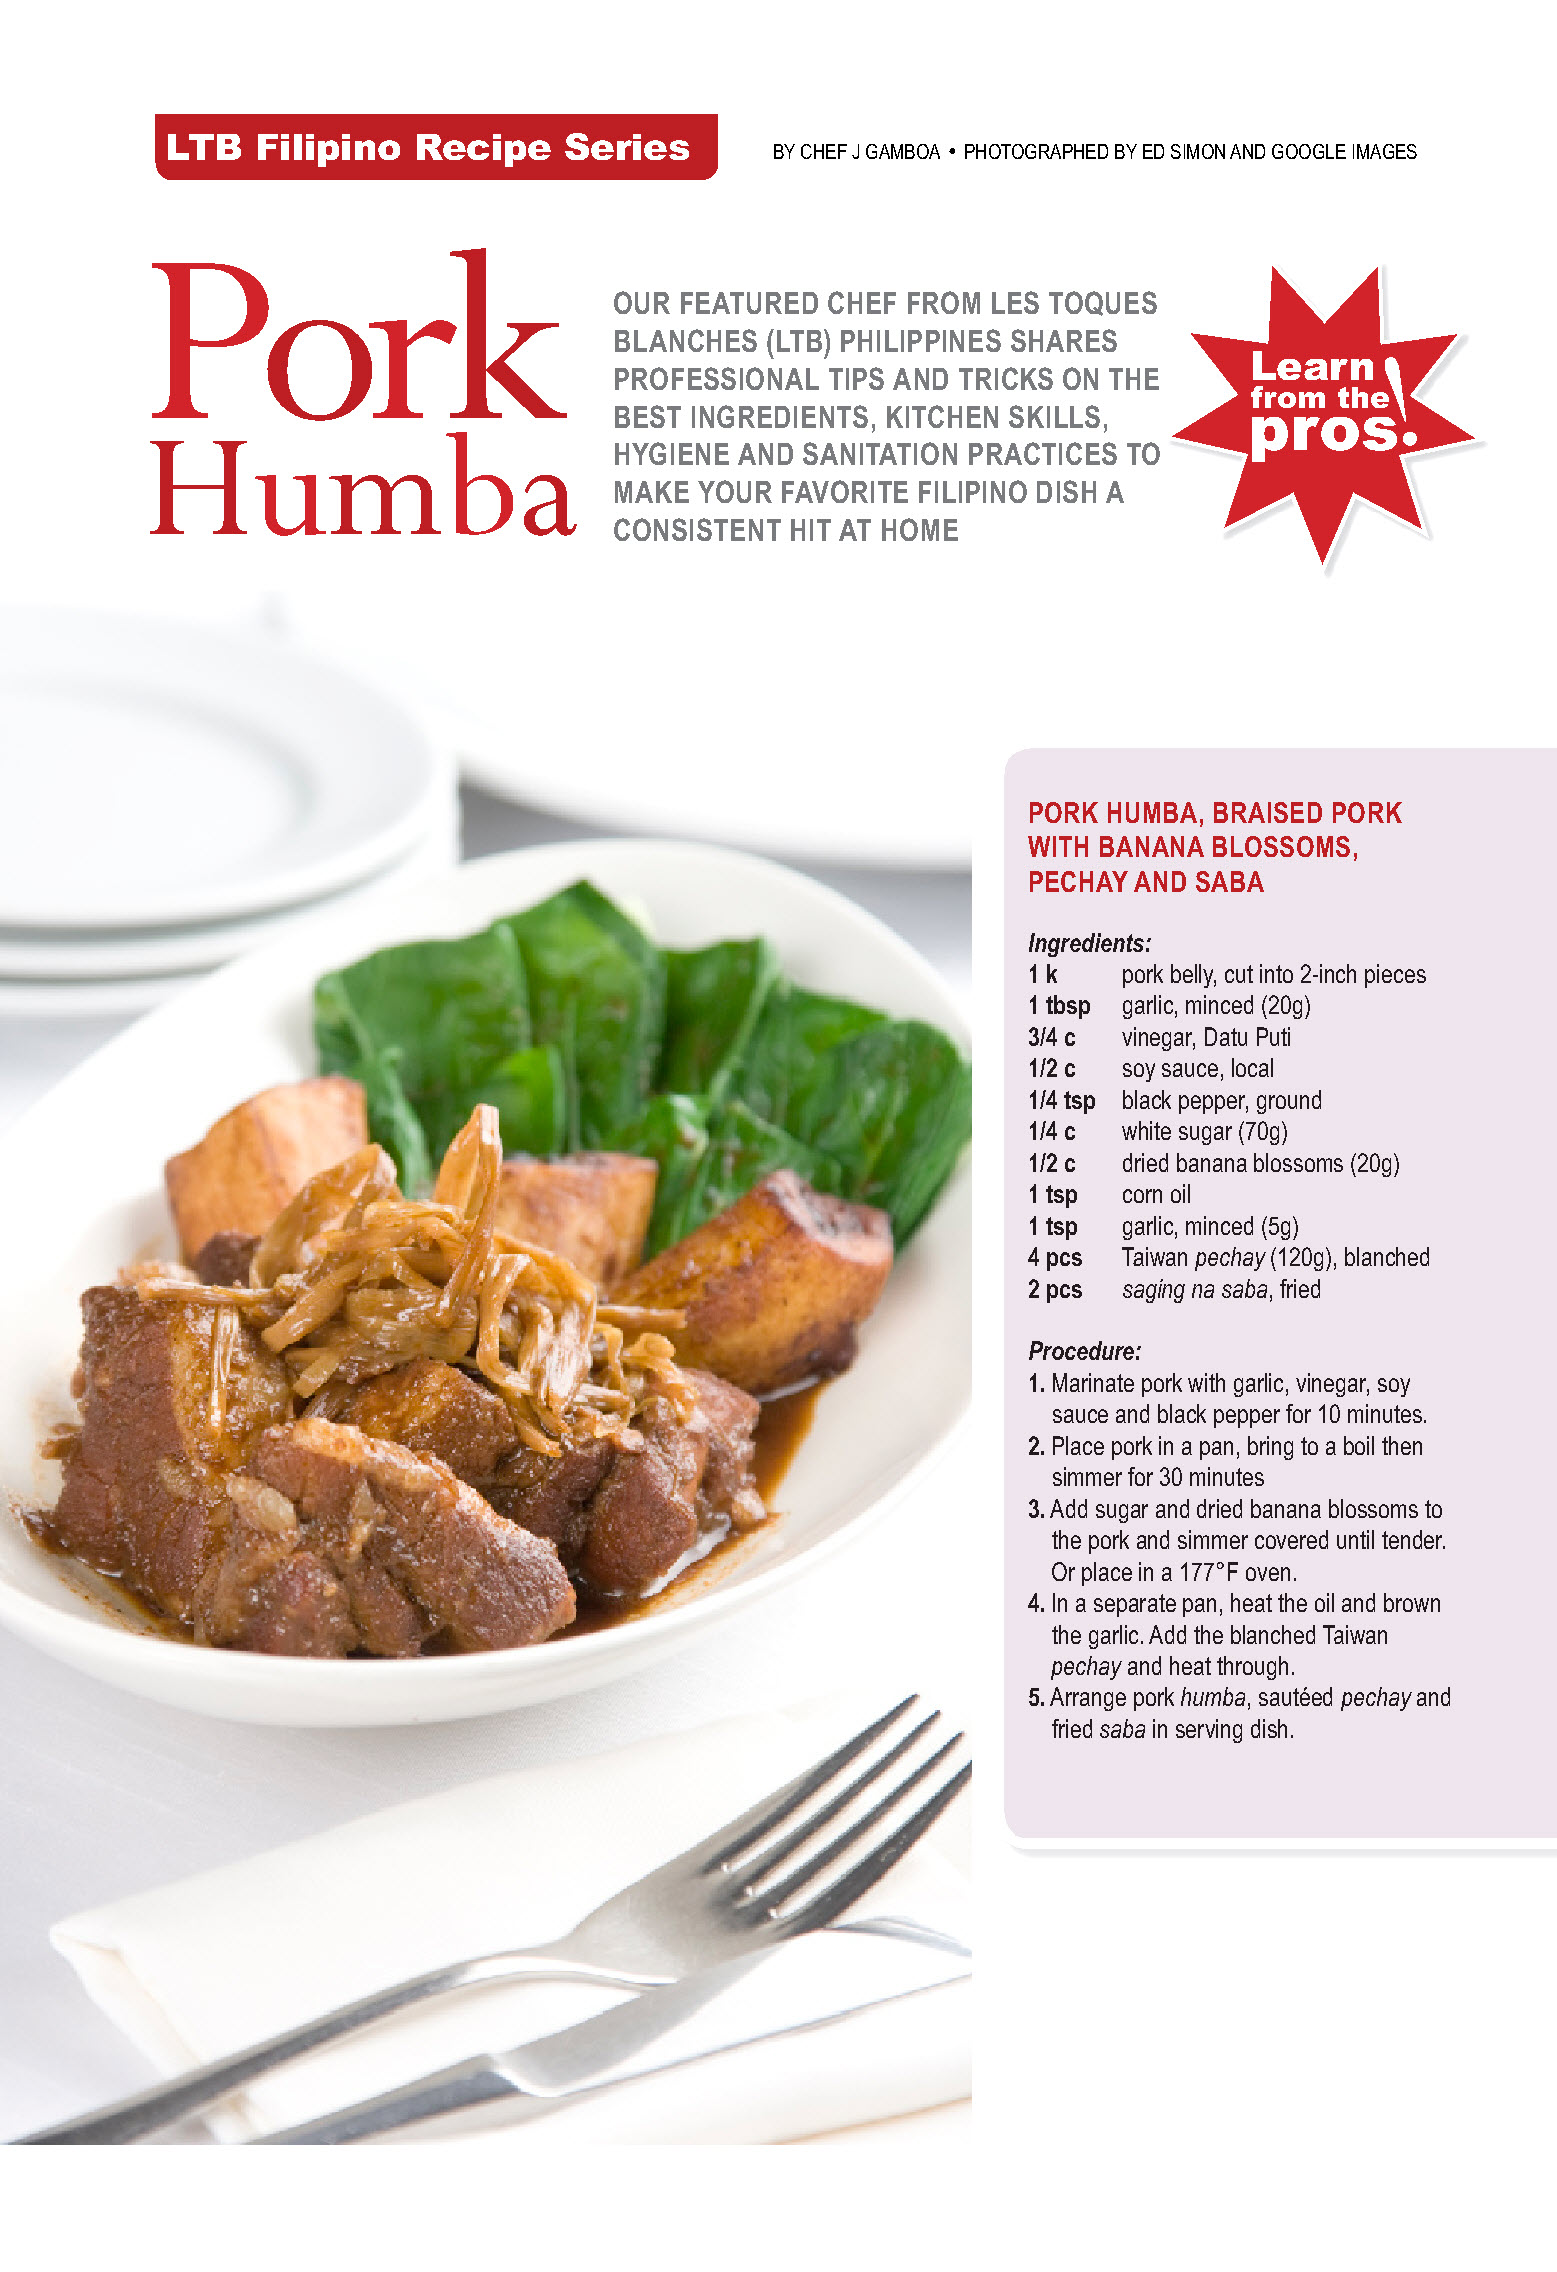 Pork Humba Recipe | LTB Chefs Phils